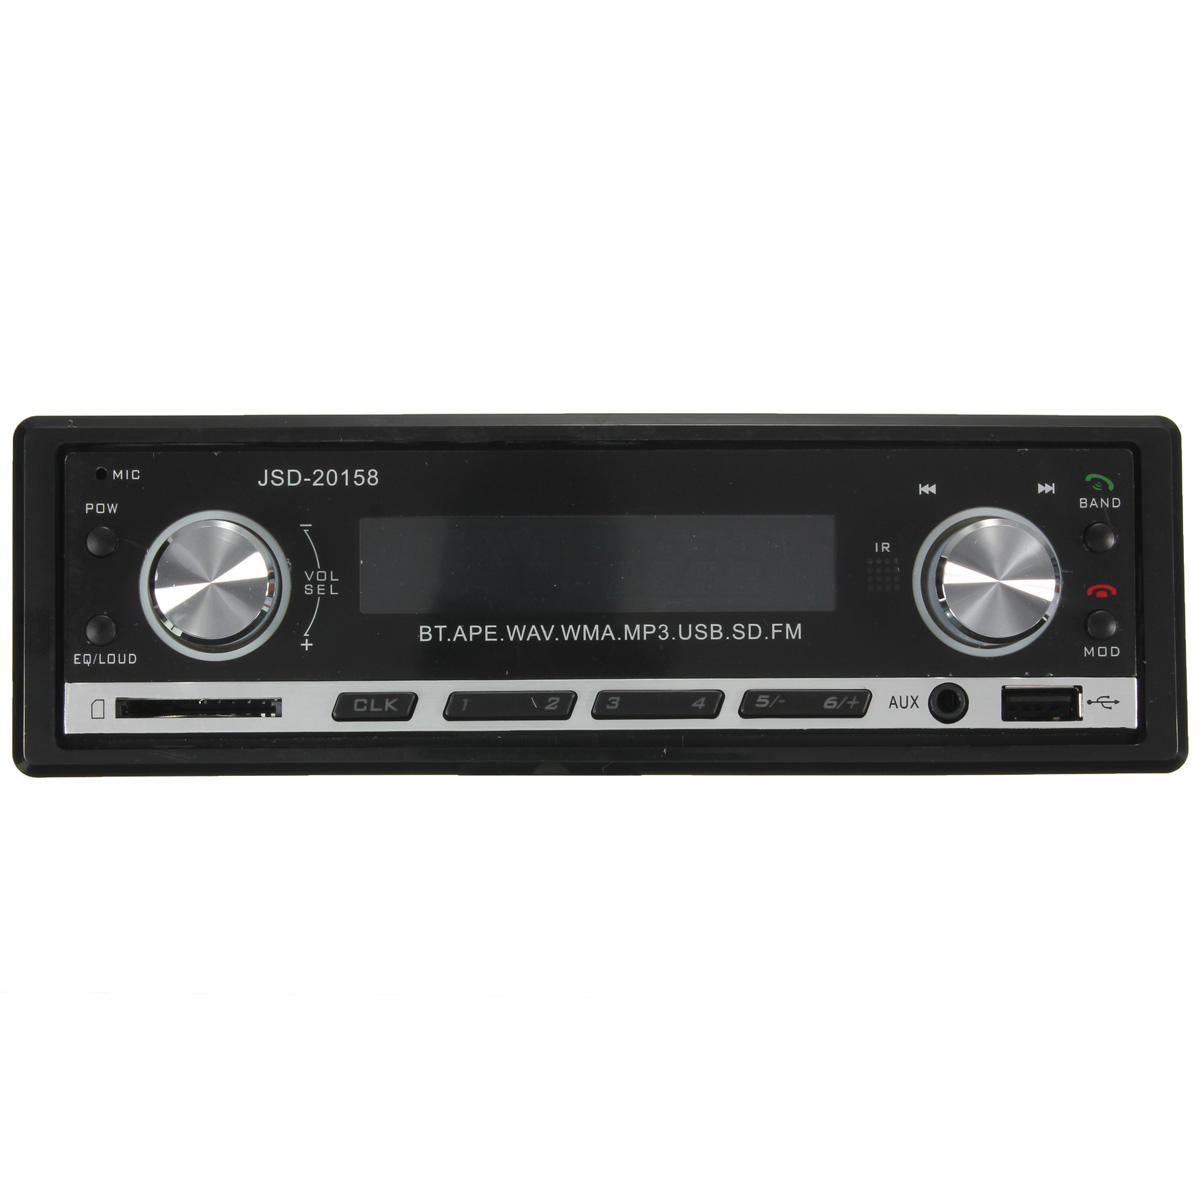 JSD-20158 Bluetooth Vehicle Car MP3 Player